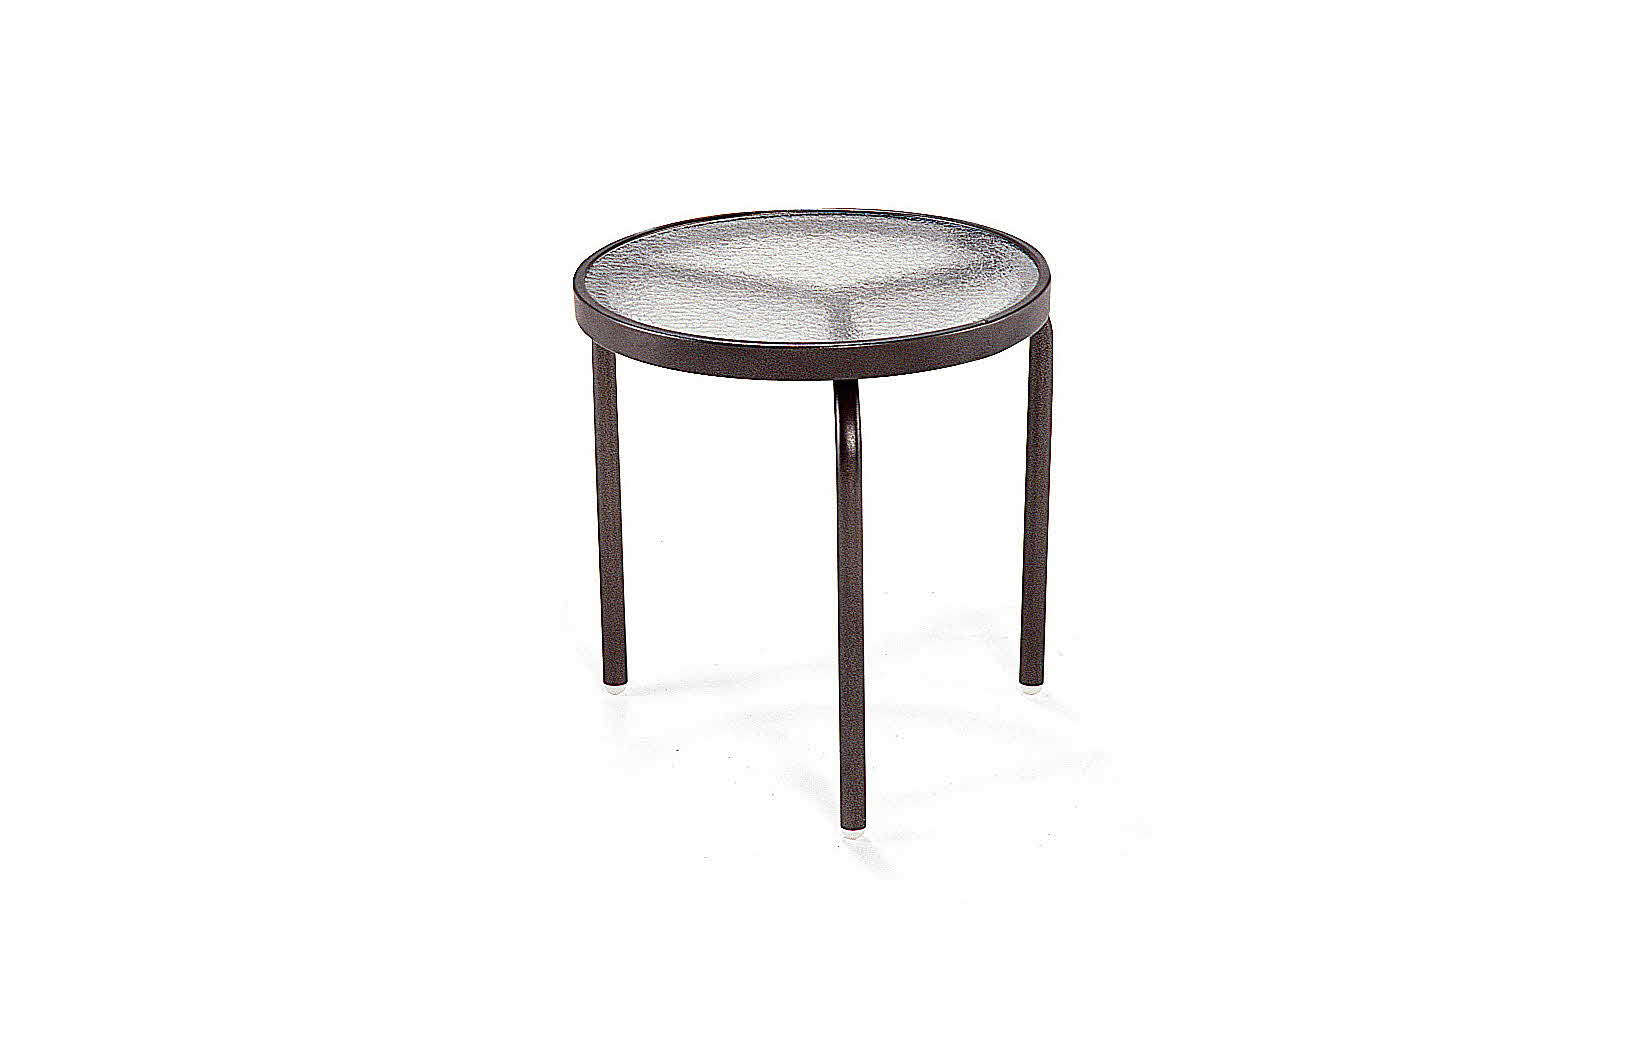 outdoor side tables commercial furniture texacraft main accent table acrylic top brass and glass target decorative pillows wall mirrors ashley trunk coffee modern toronto asian